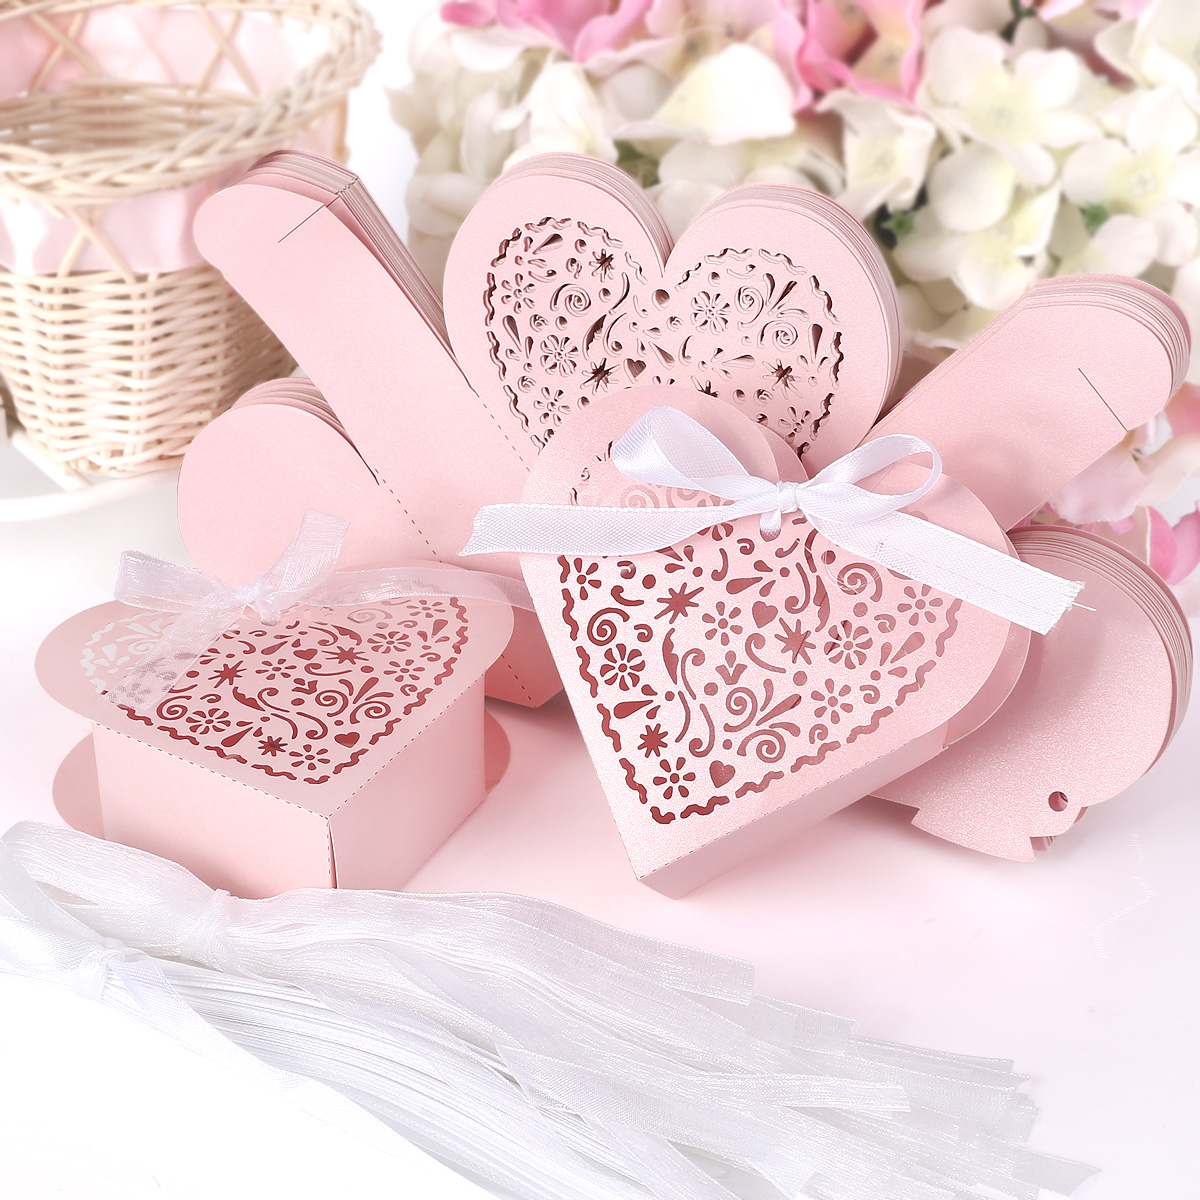 25 Heart Shape Laser Cut Bomboniere Boxes Wedding Favor Shower Candy ...